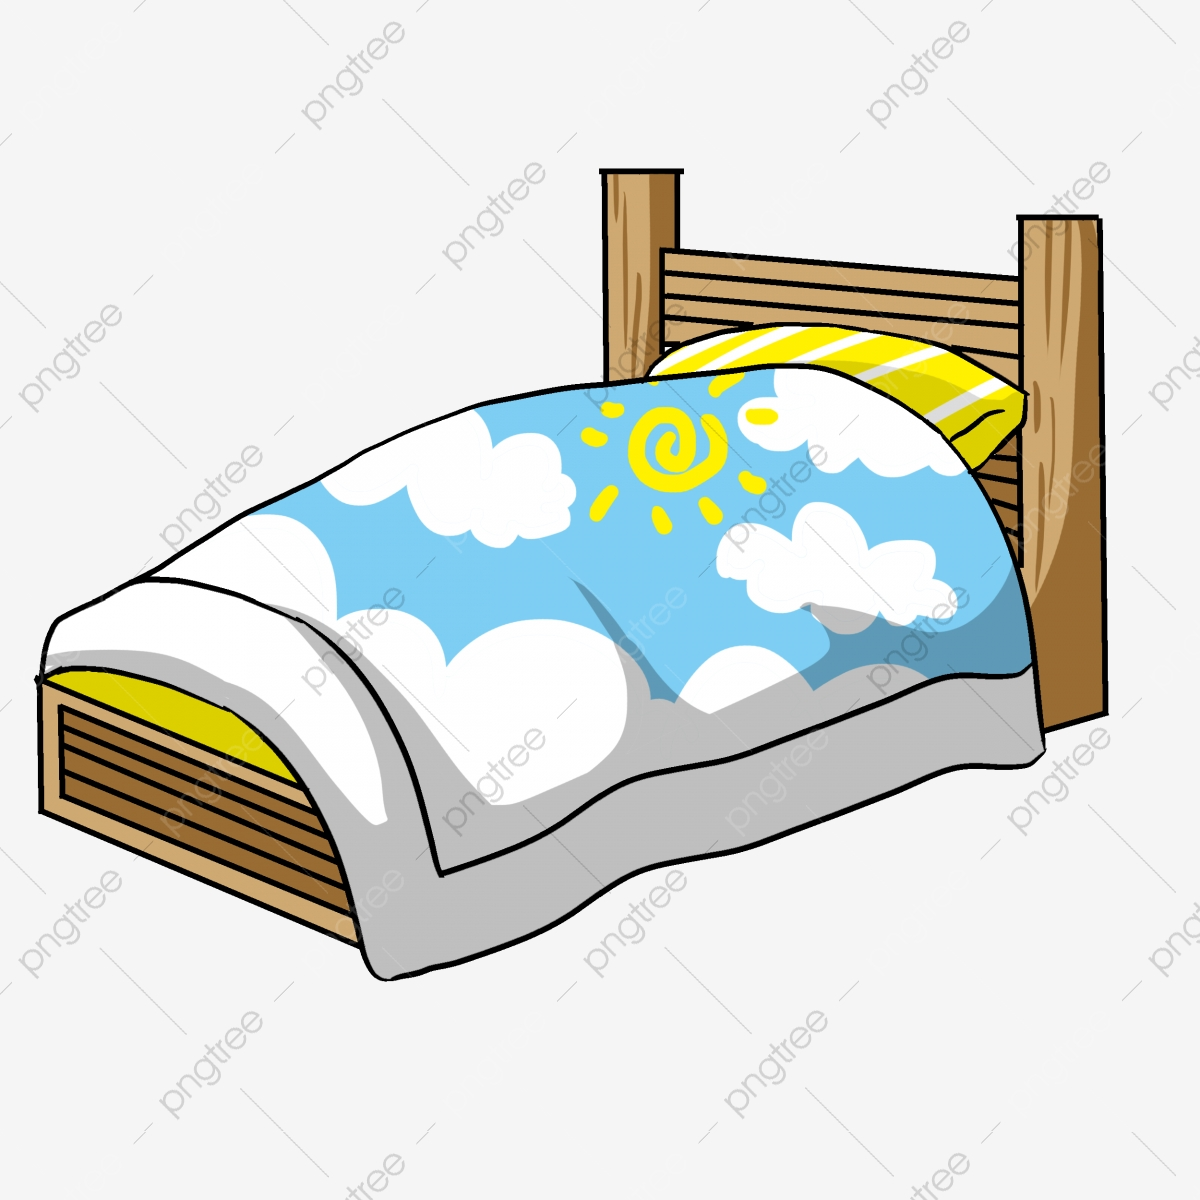 A Dark Single Bed Illustration Bed Clipart A Dark Single Bed Illustration Png Transparent Clipart Image And Psd File For Free Download